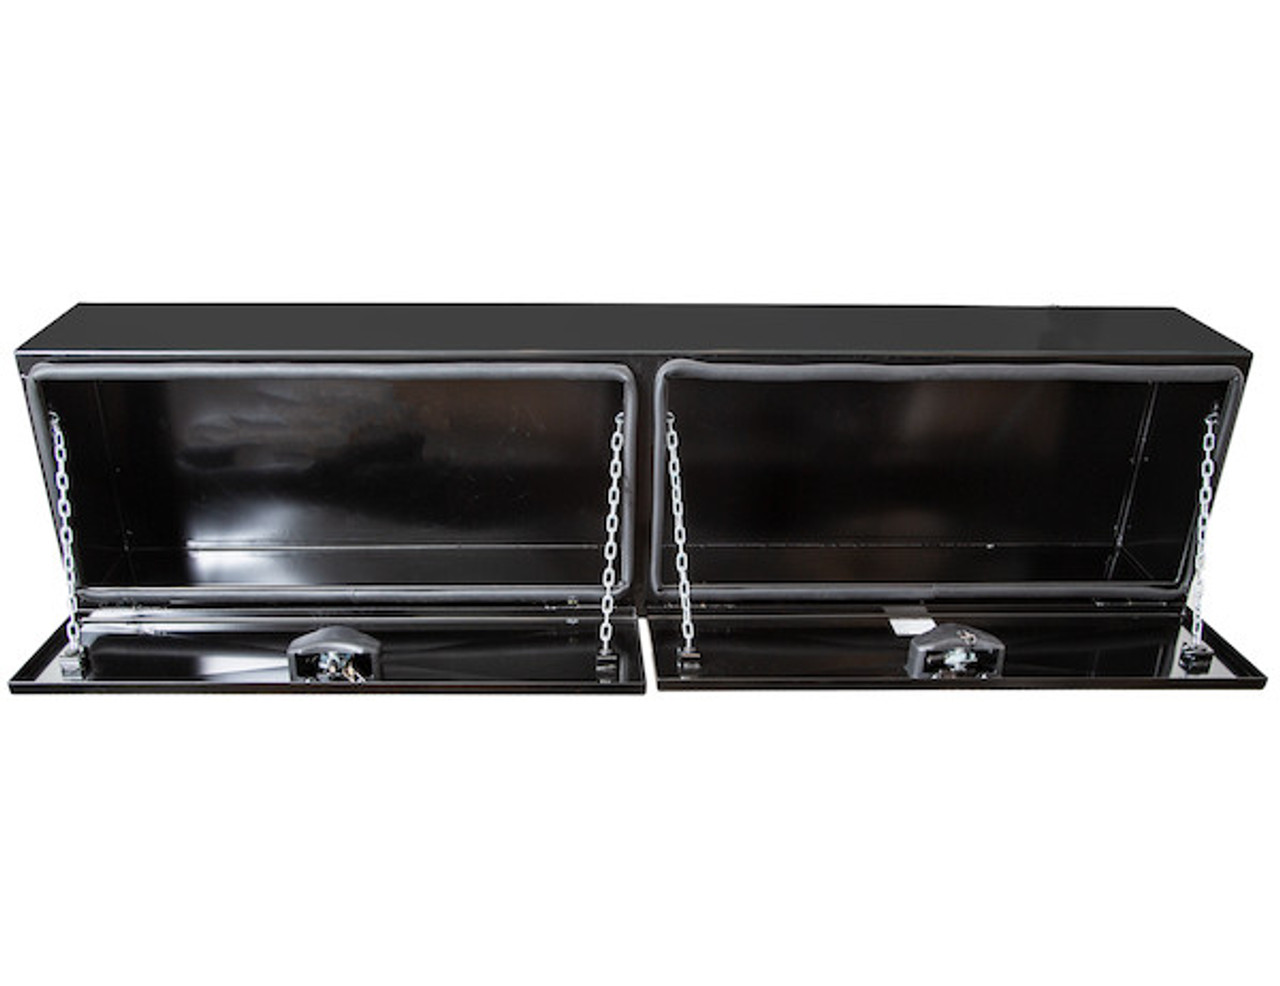 """1742336 BUYERS PRODUCTS XD BLACK STEEL UNDERBODY HEAVY DUTY TRUCK TOOLBOX 18""""Hx18""""Dx96""""W PICTURE # 4"""